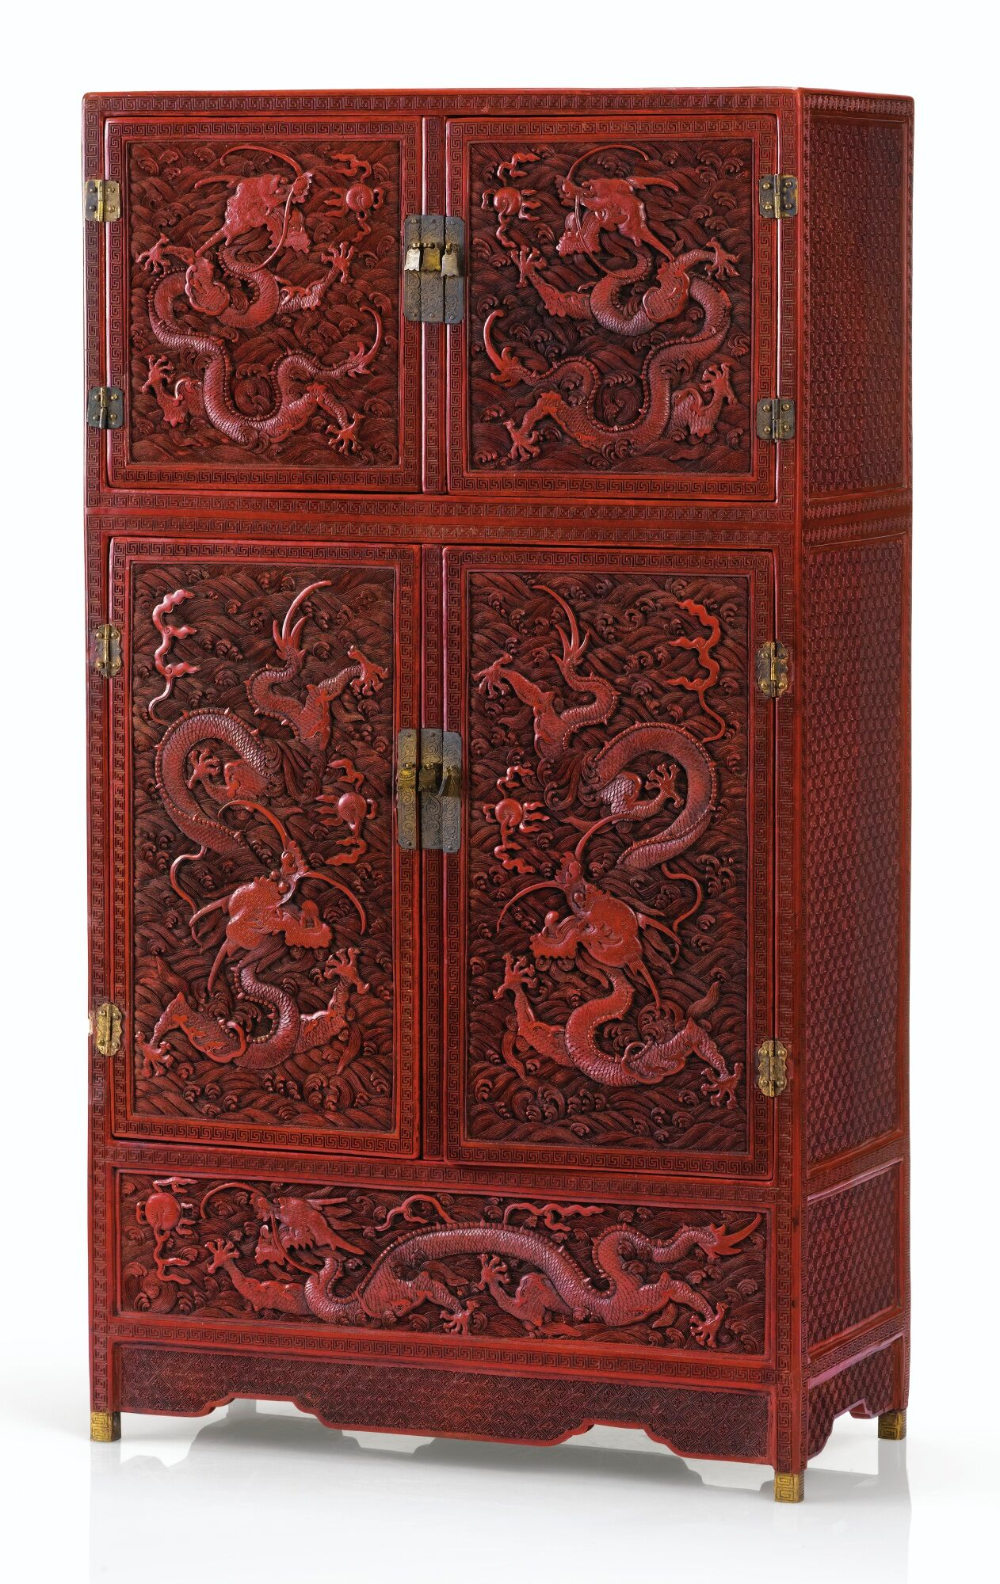 Chinesische Möbel Carving ||| Sotheby's Pf1607lot8xj8nfr In 2020 ...